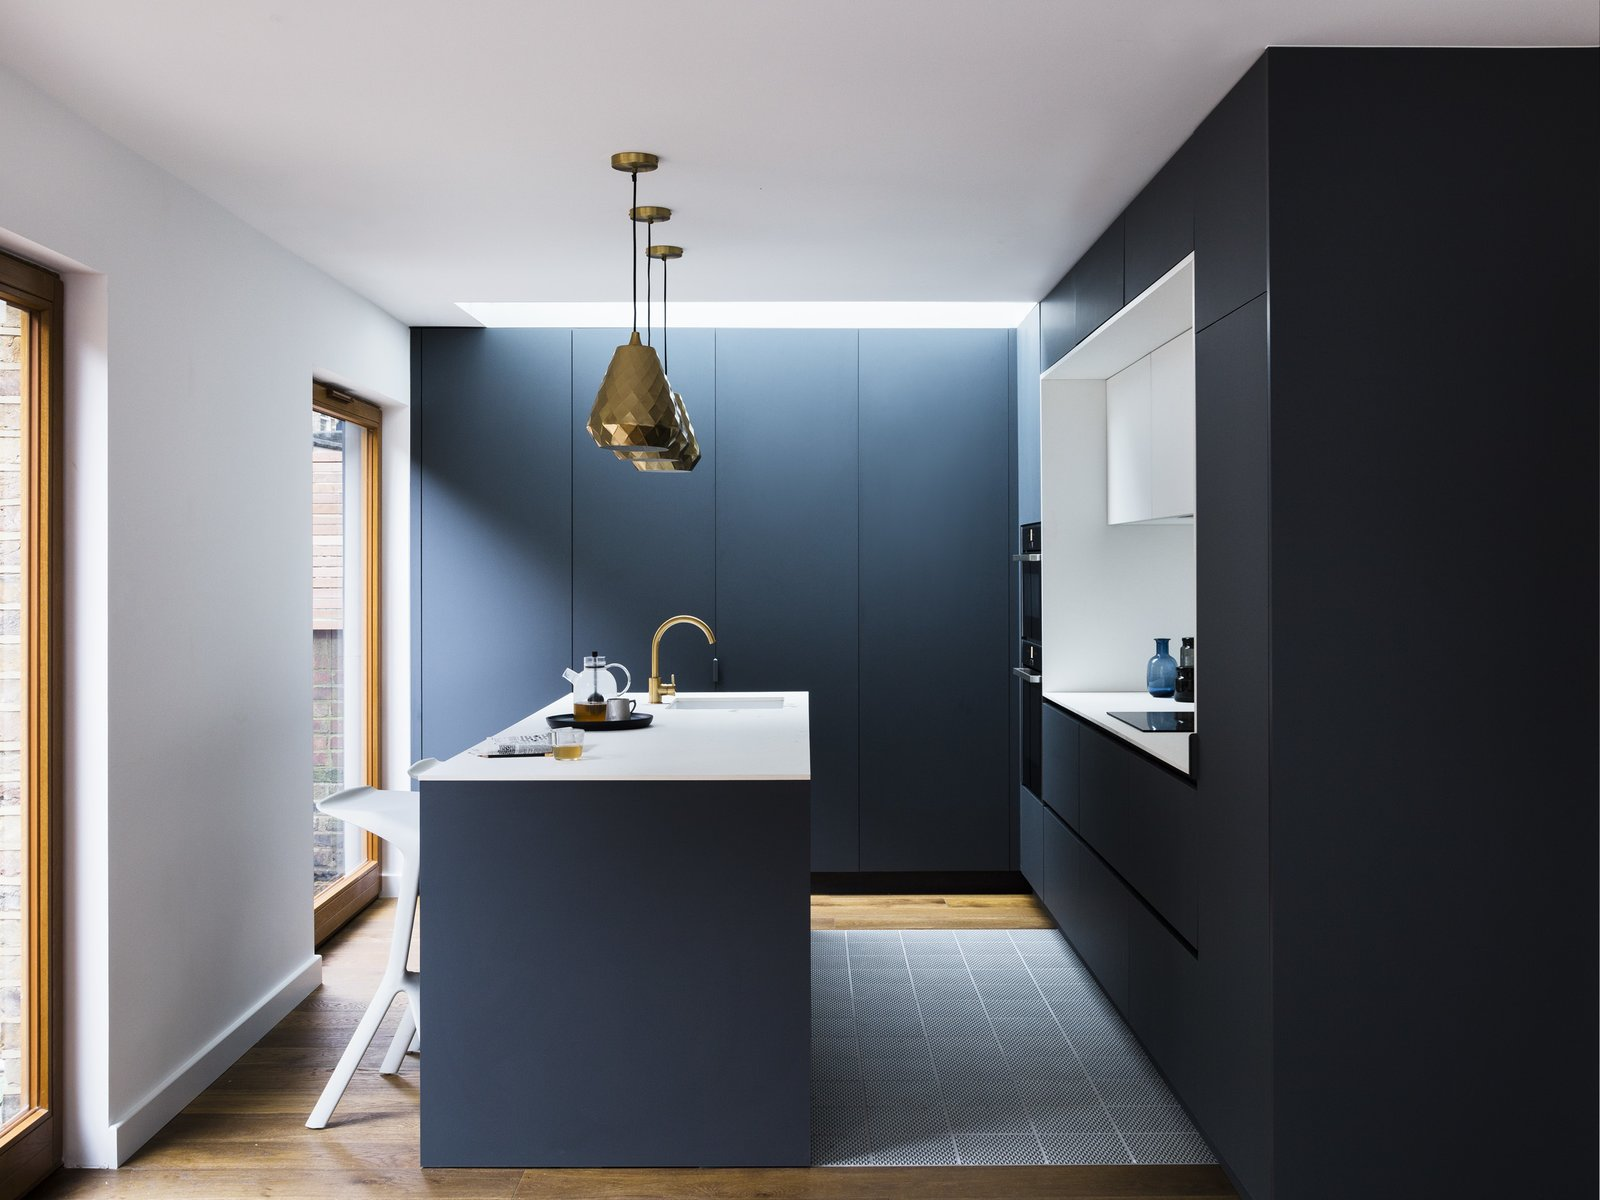 Kitchen, Cooktops, Undermount Sink, Medium Hardwood Floor, White Cabinet, and Pendant Lighting Aston pendants by House Doctor match the metallic hue of the tap.  White Miura Stools be PLANK provide seating at the island.  Photo 7 of 11 in A Sleek Renovation in London Ushers Light Into a Family Home